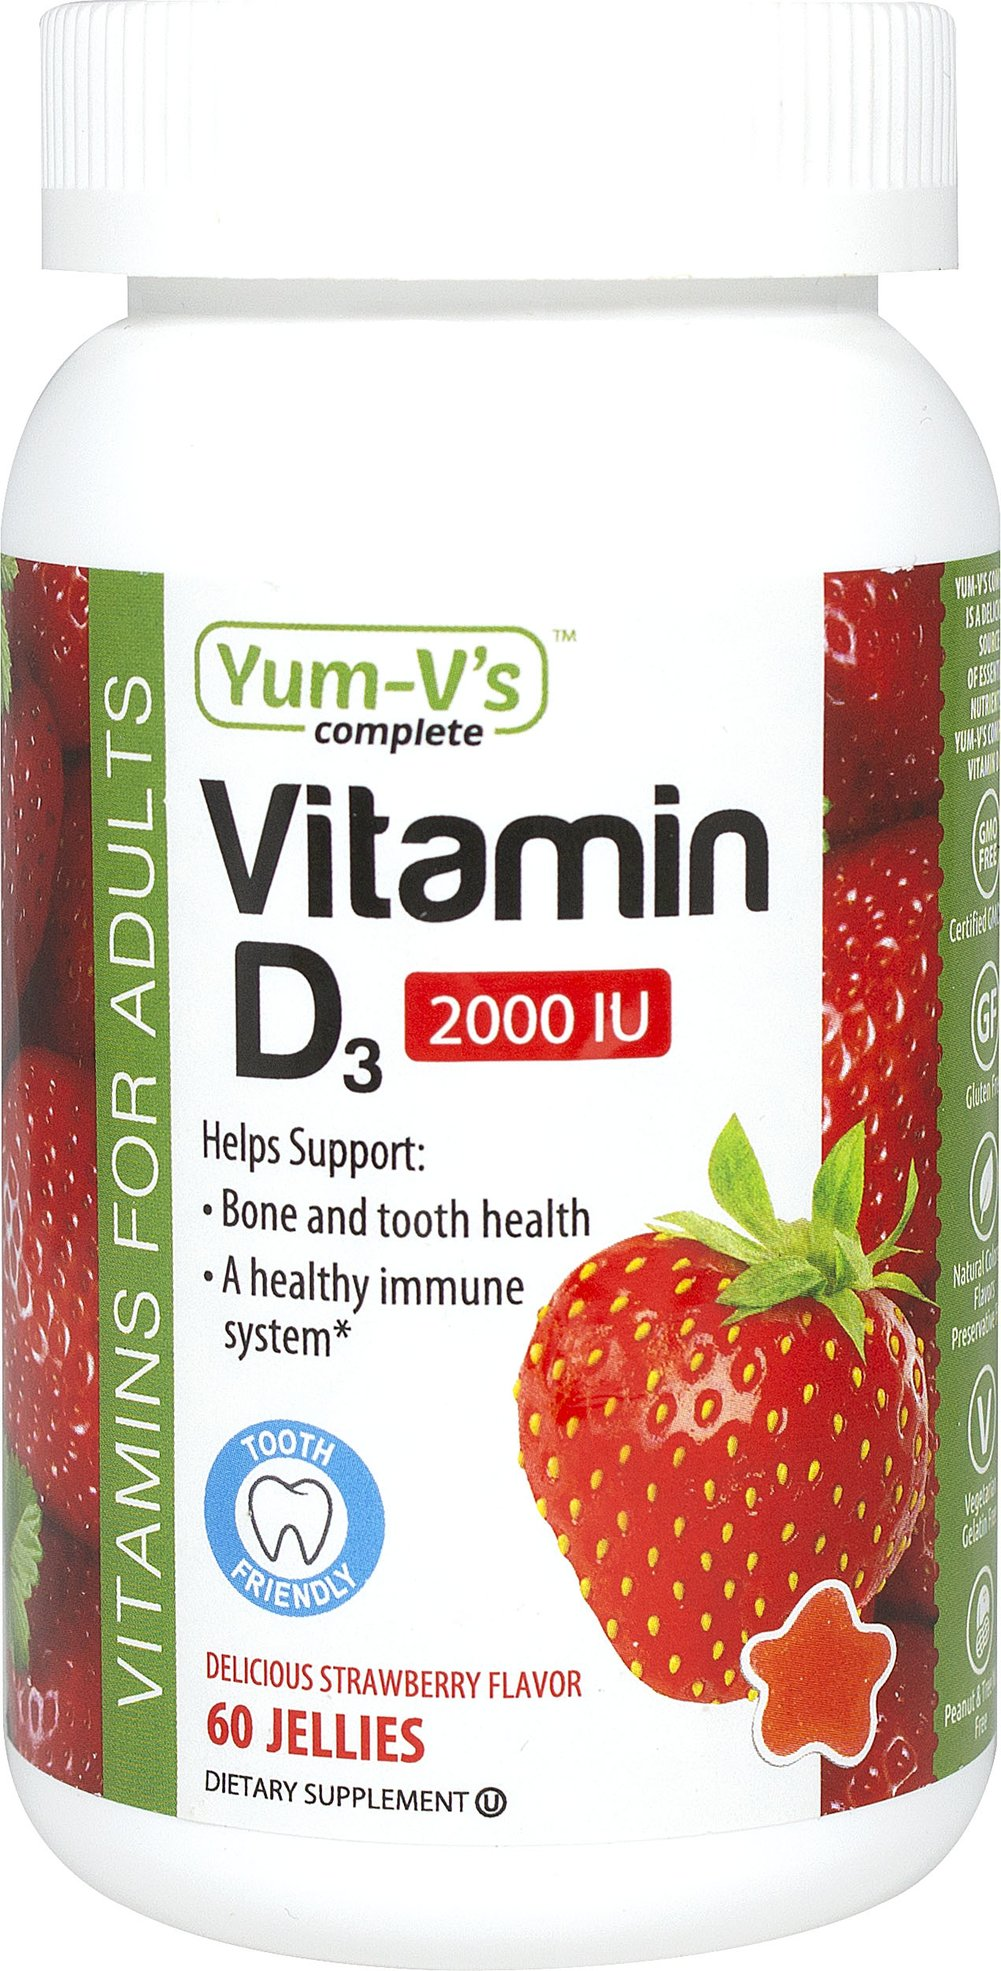 Vitamin D3 2000 IU Thumbnail Alternate Bottle View